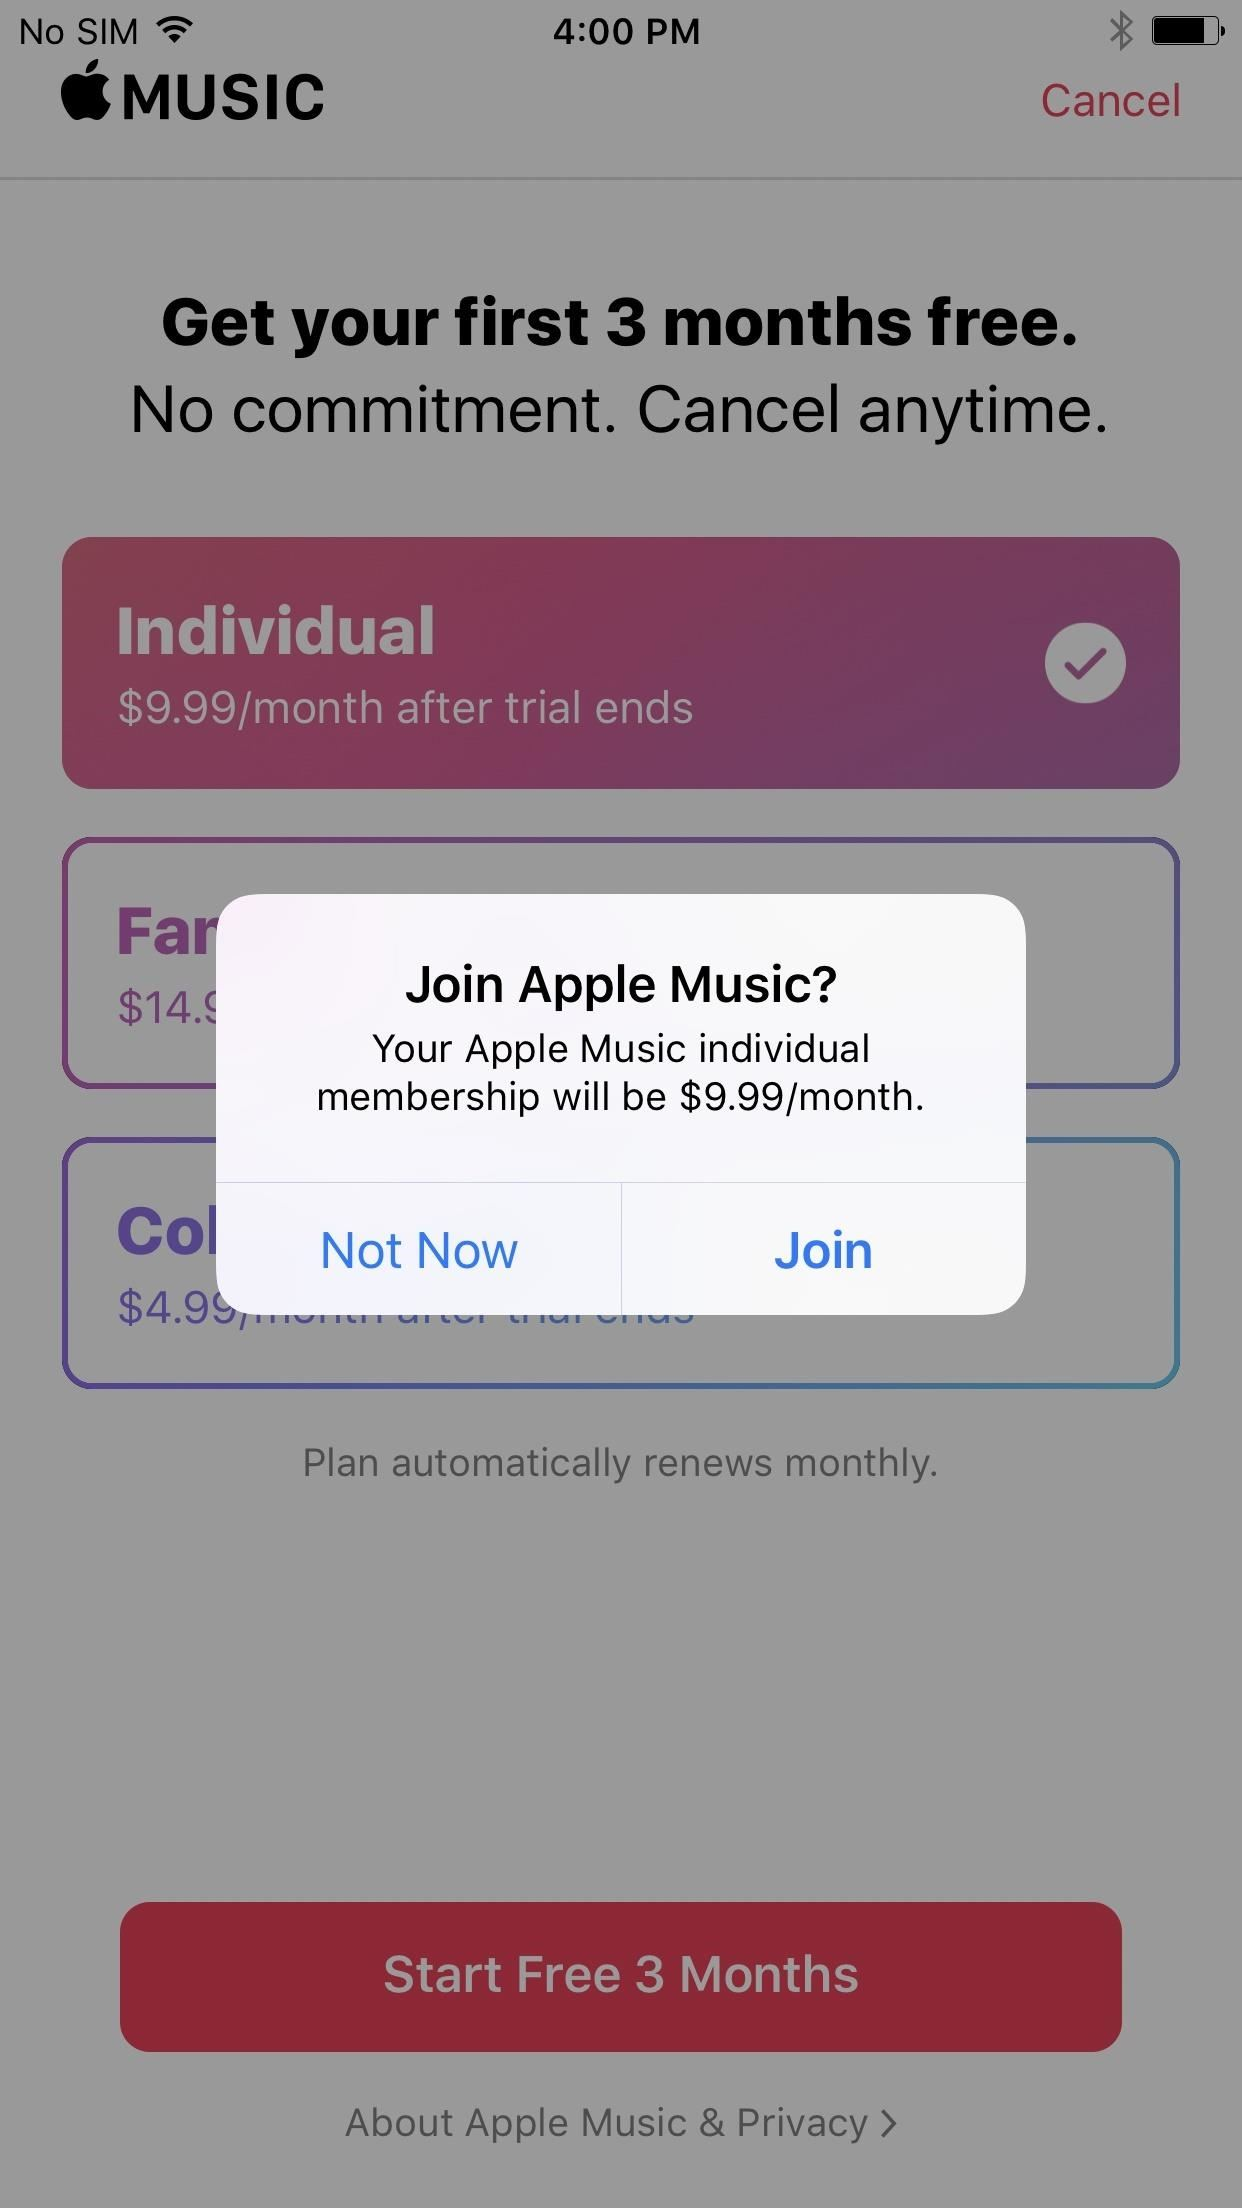 How to Disable Apple Music's Auto-Renewal for Free Trials So You Don